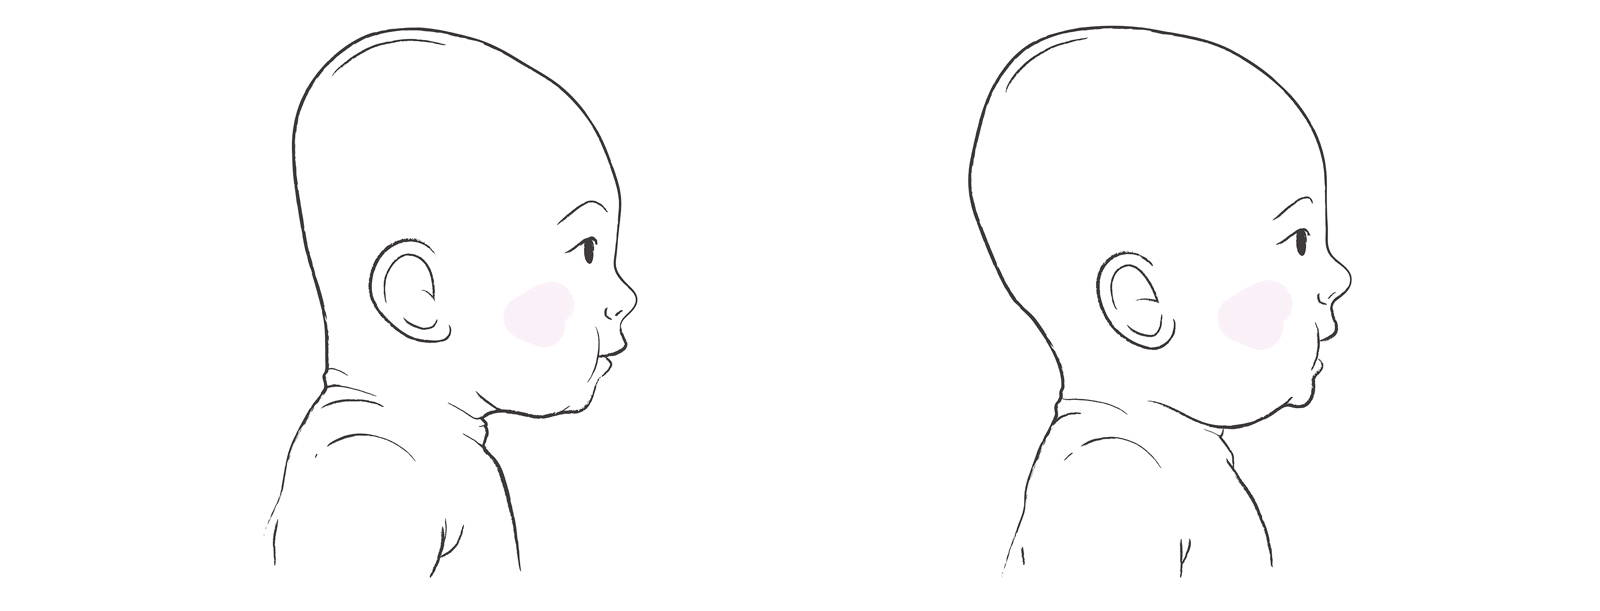 Illustration of a baby with plagiocephaly next to a baby without.